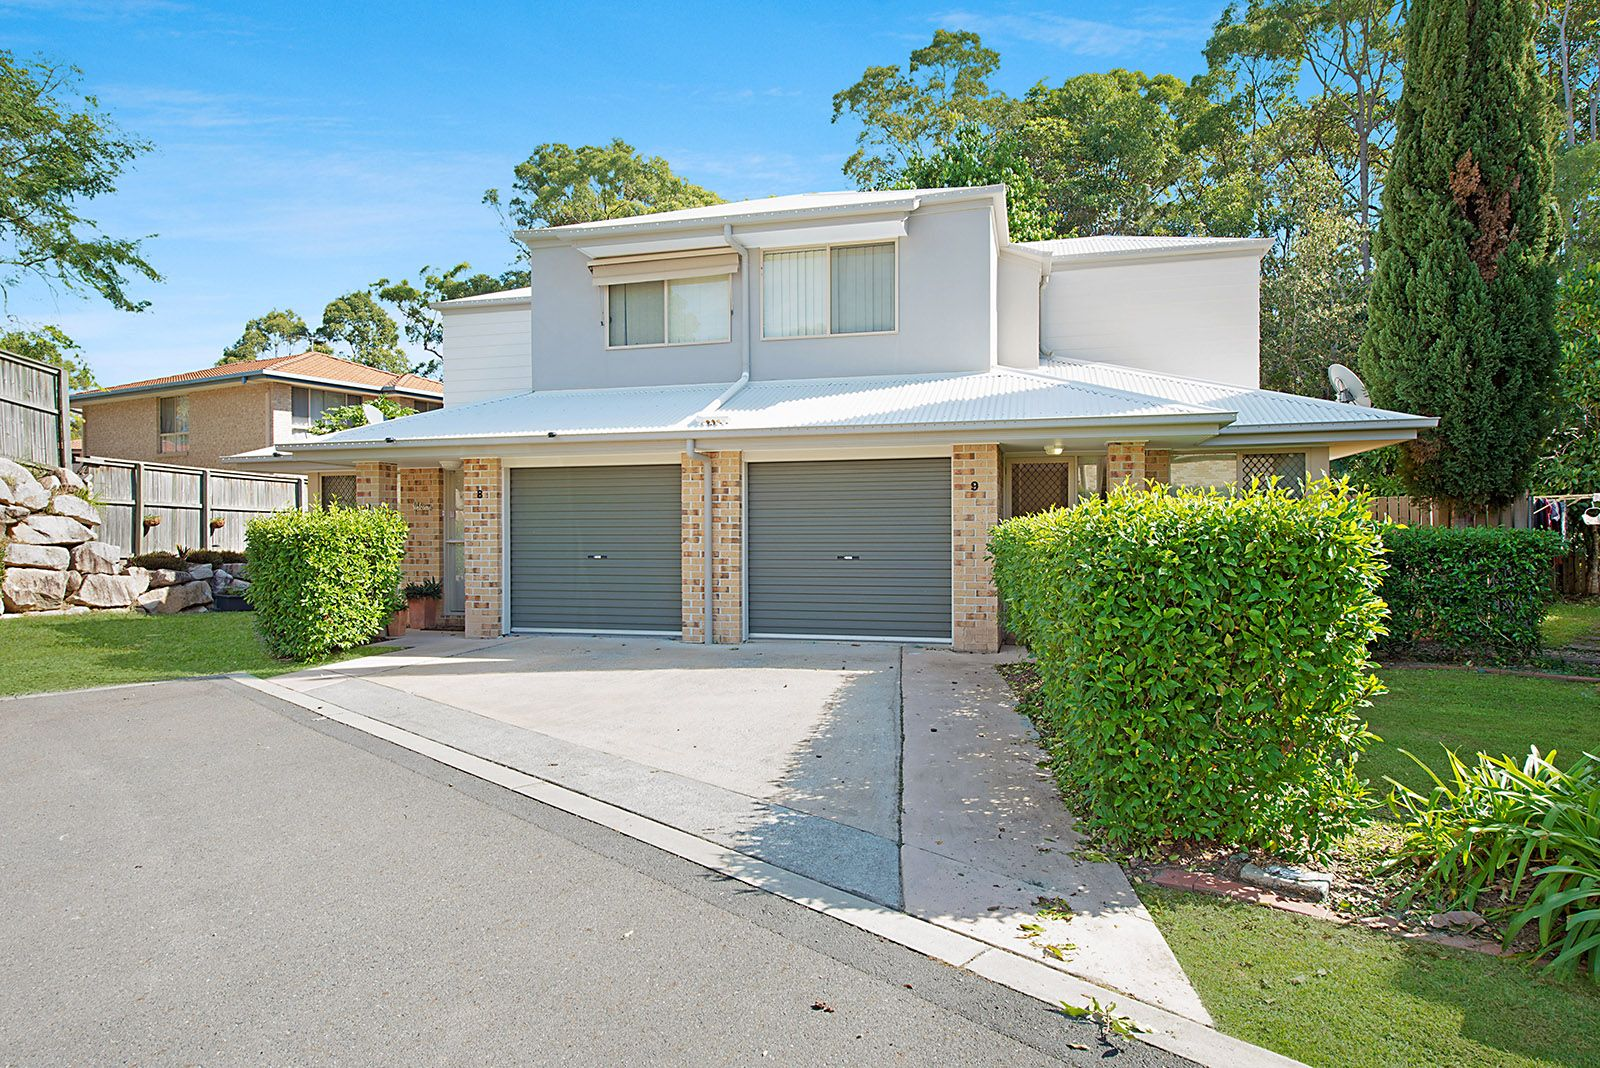 9/65 Hockey St, Kuraby QLD 4112, Image 0